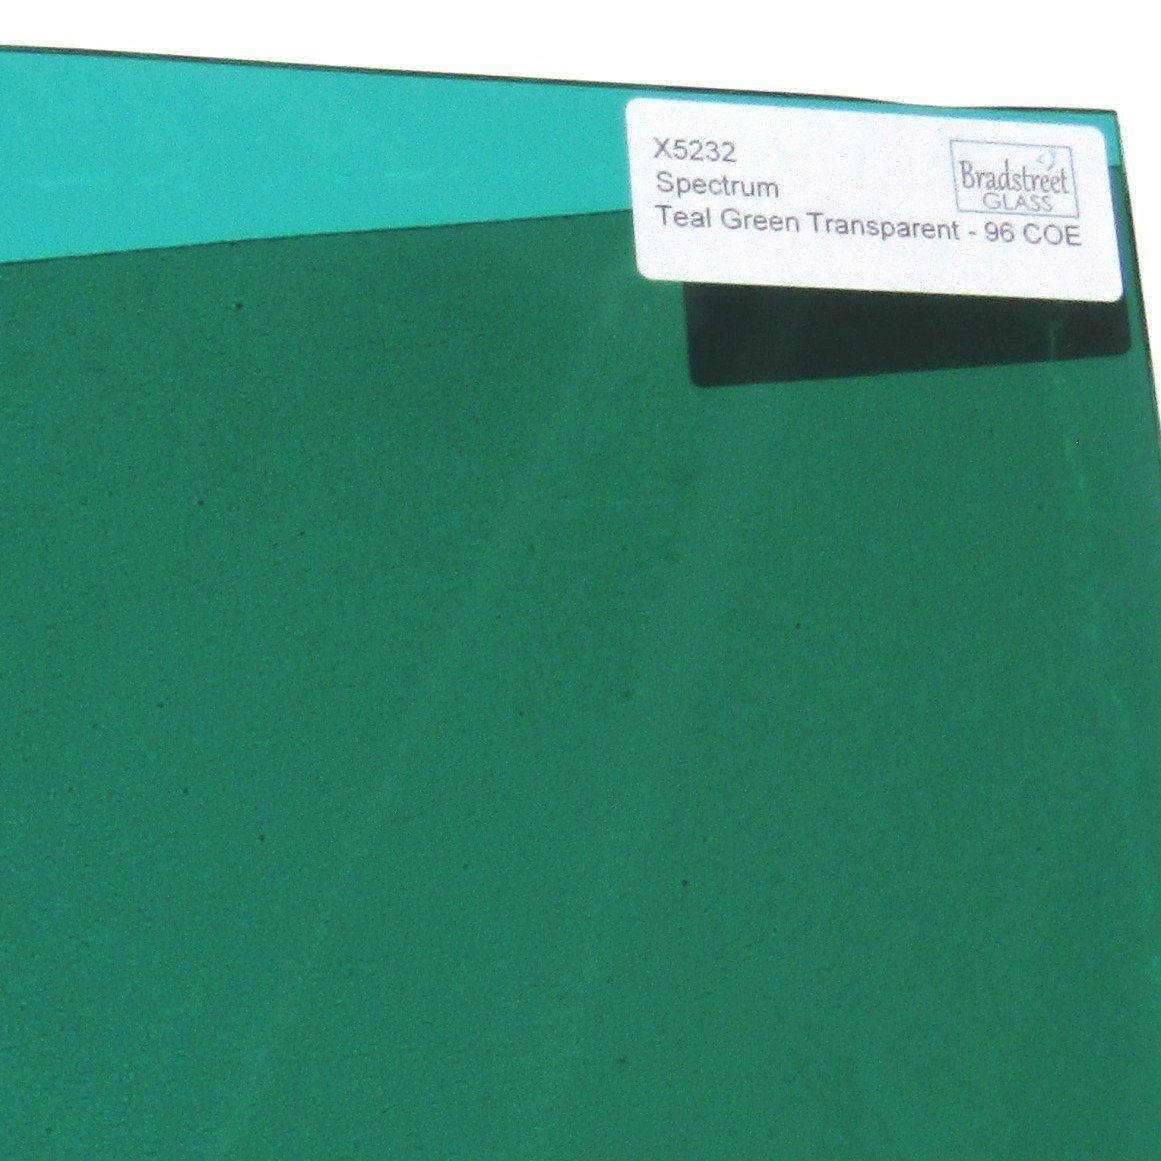 Spectrum System 96 Teal Green Transparent Fusible Stained Glass Sheet 96 Coe Translucent Sf5232 Get 10 Off Orders Ove Teal Green Stained Glass Spectrum Glass